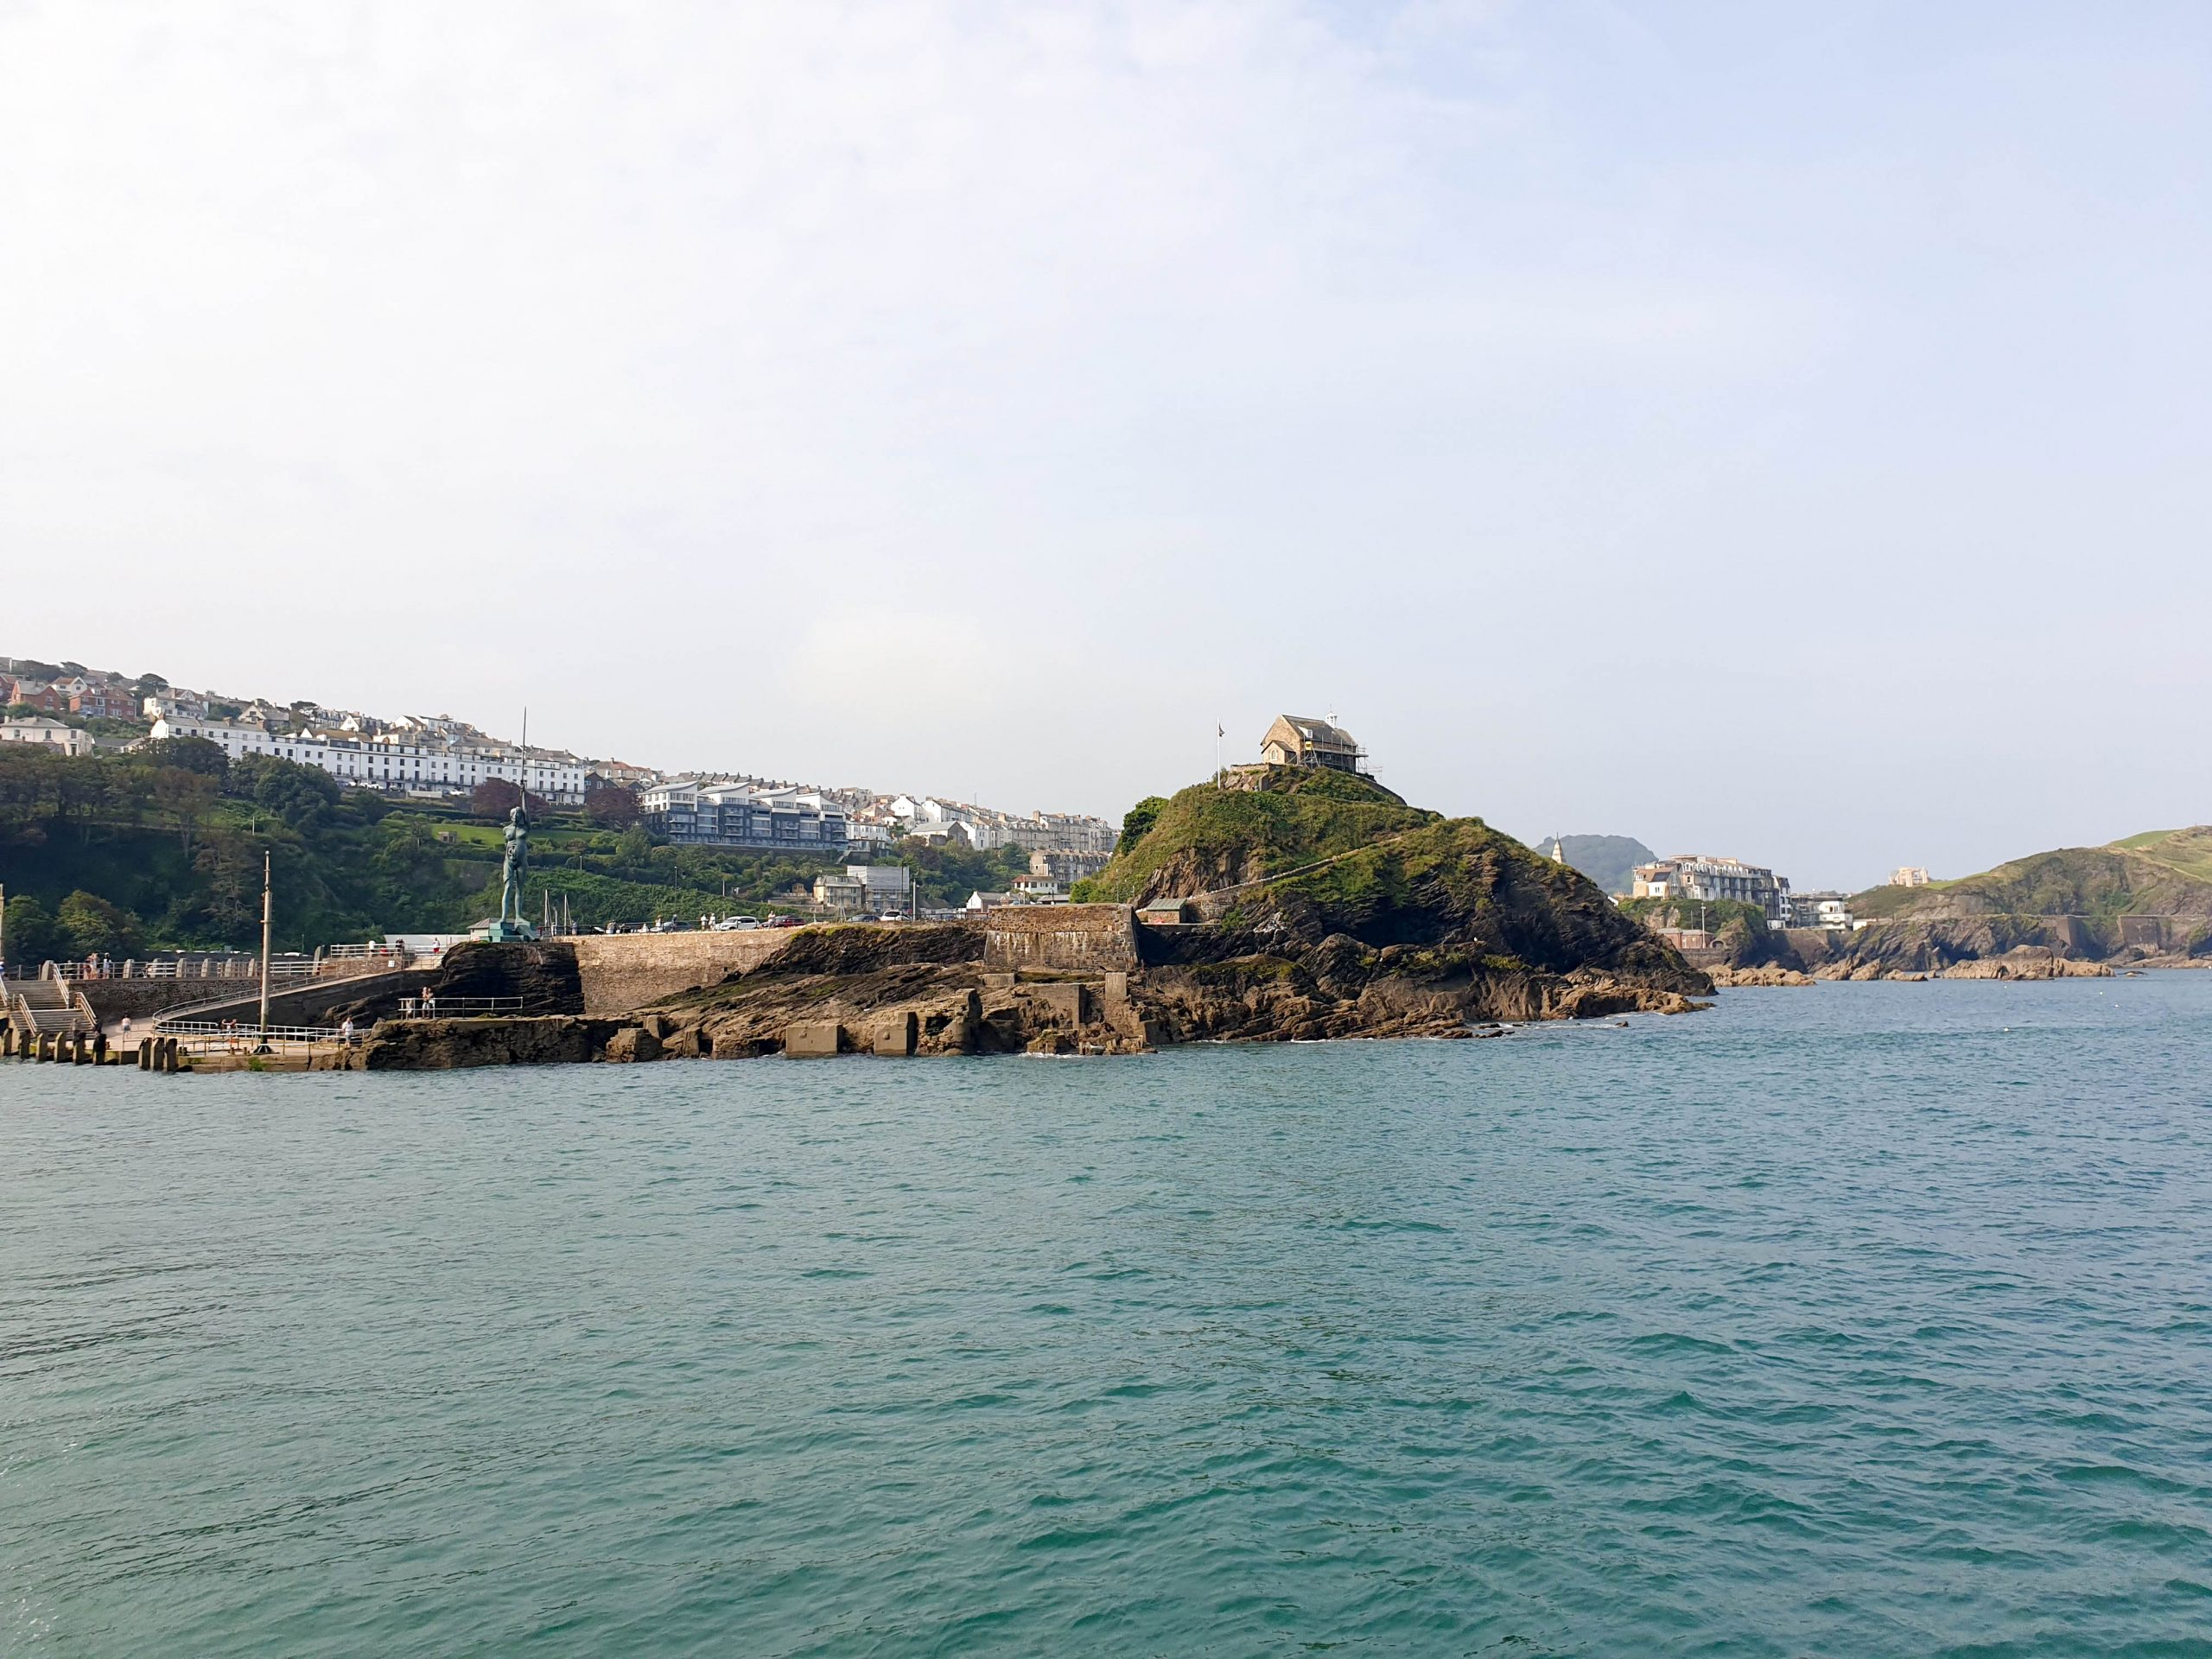 View of Ilfracombe Harbour, South West England